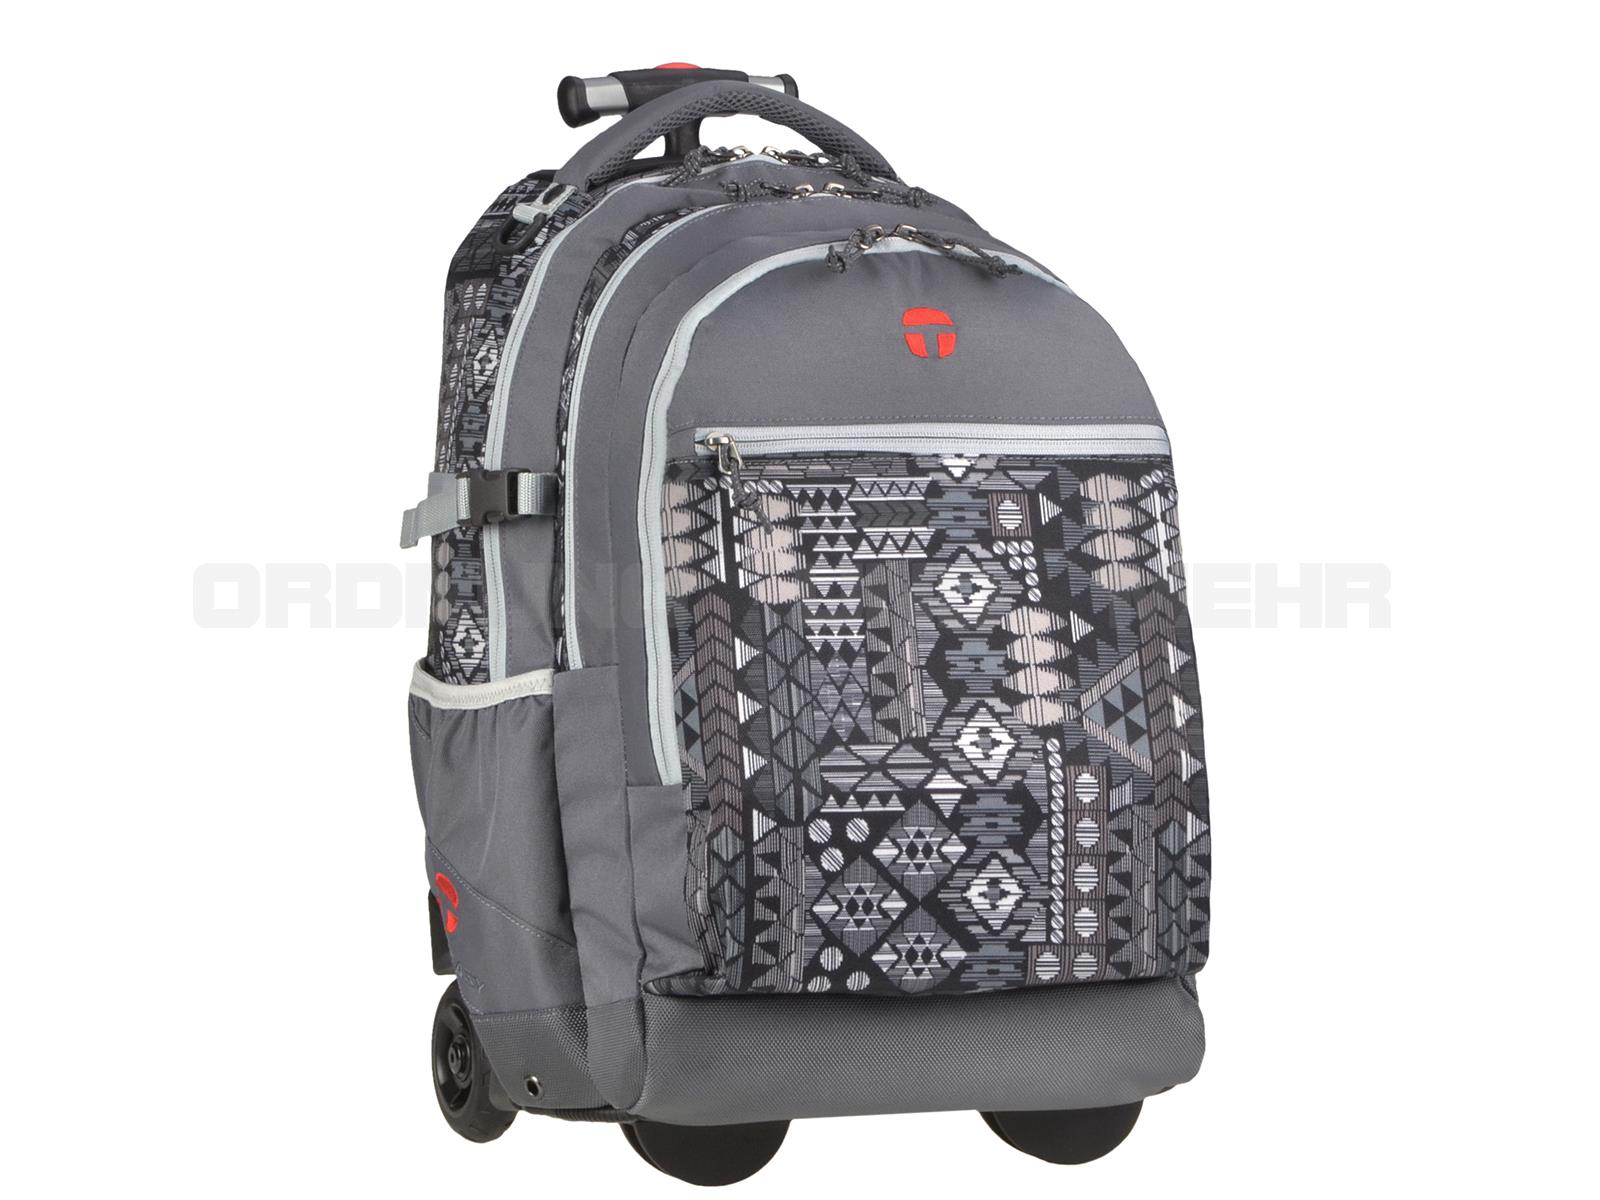 Take it Easy Rucksack Trolley AZTEC GREY in graun 28045-504-002